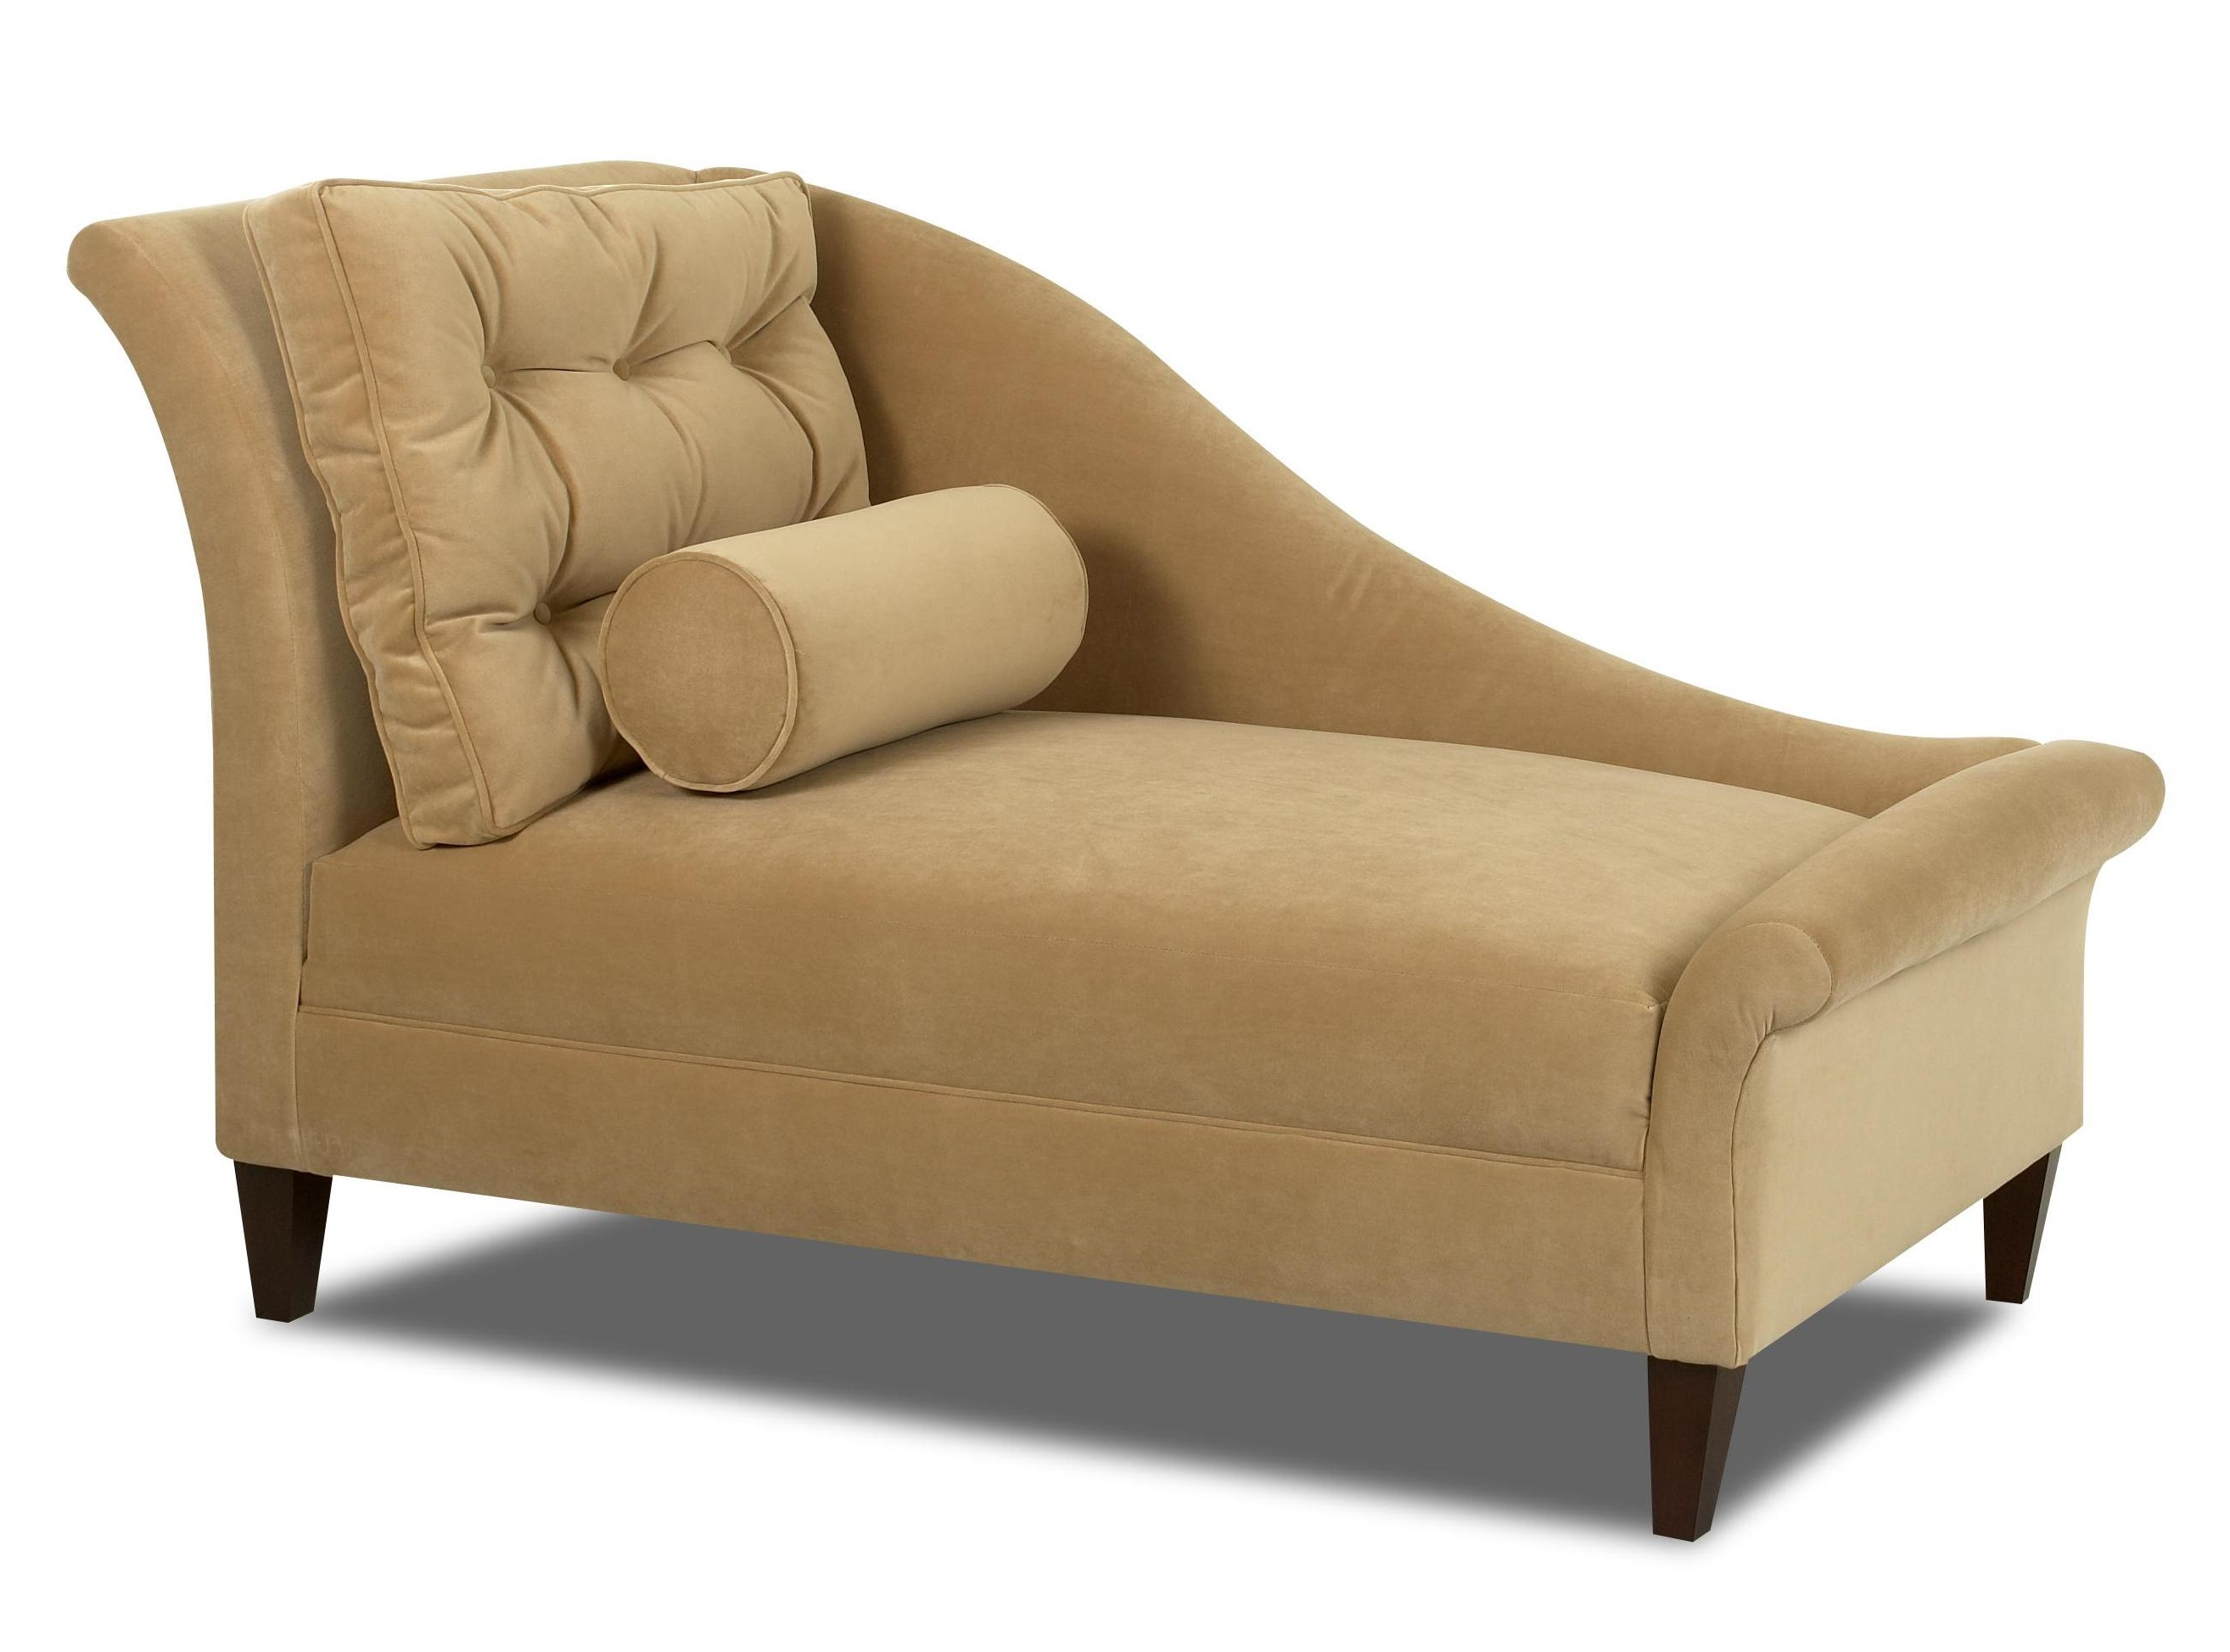 Convertible Chair : Lounge Bedroom Chaise Longue Curved Chaise For Preferred Narrow Chaise Lounge Chairs (View 2 of 15)